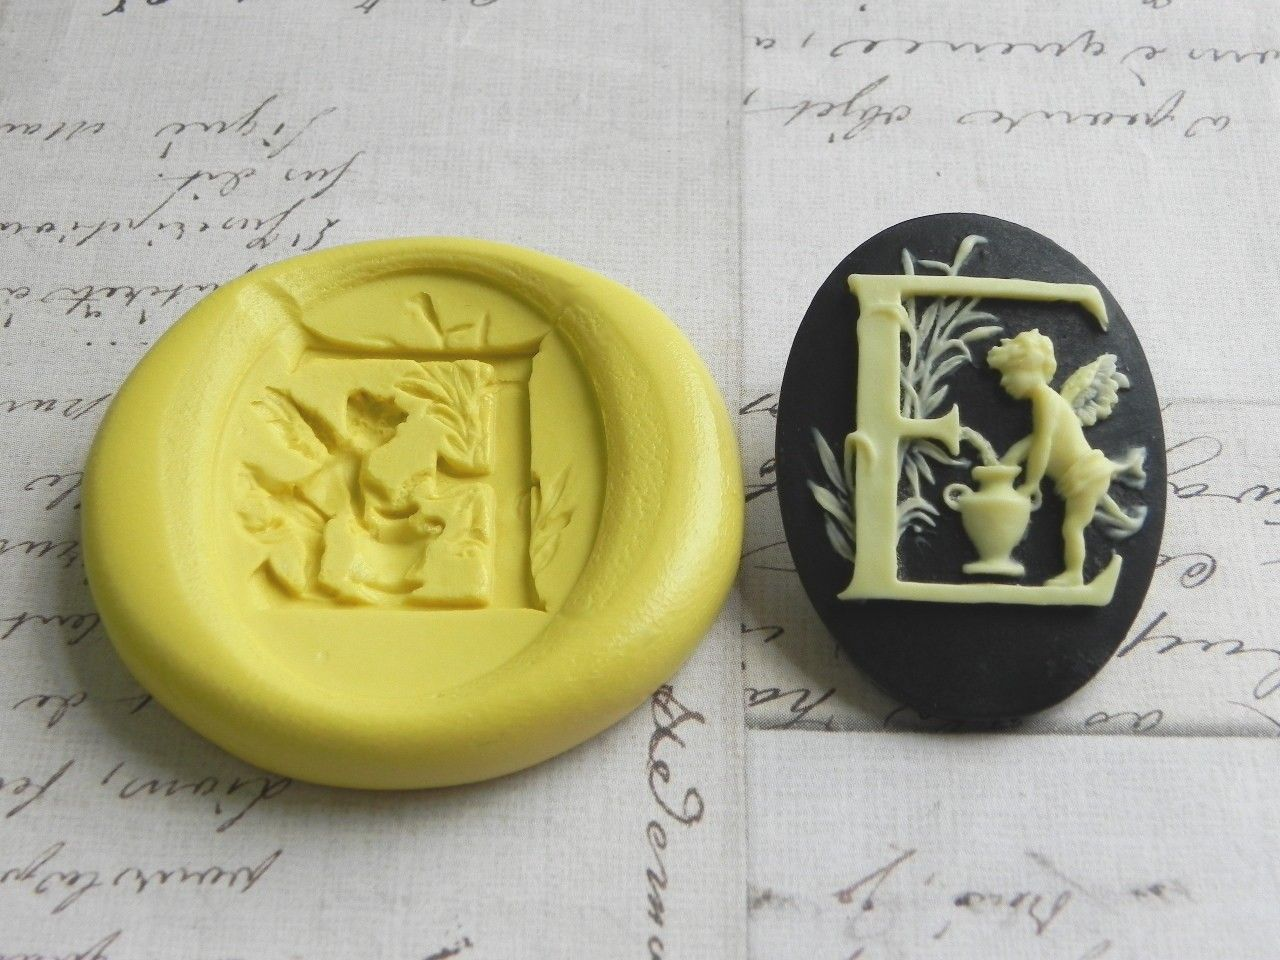 Vintage Angel Alphabet 40mm x 30mm Cabochon Series - LETTER E - Flexible Silicone Mold - Polymer Clay Mold, Resin Mold. $4.99, via Etsy.